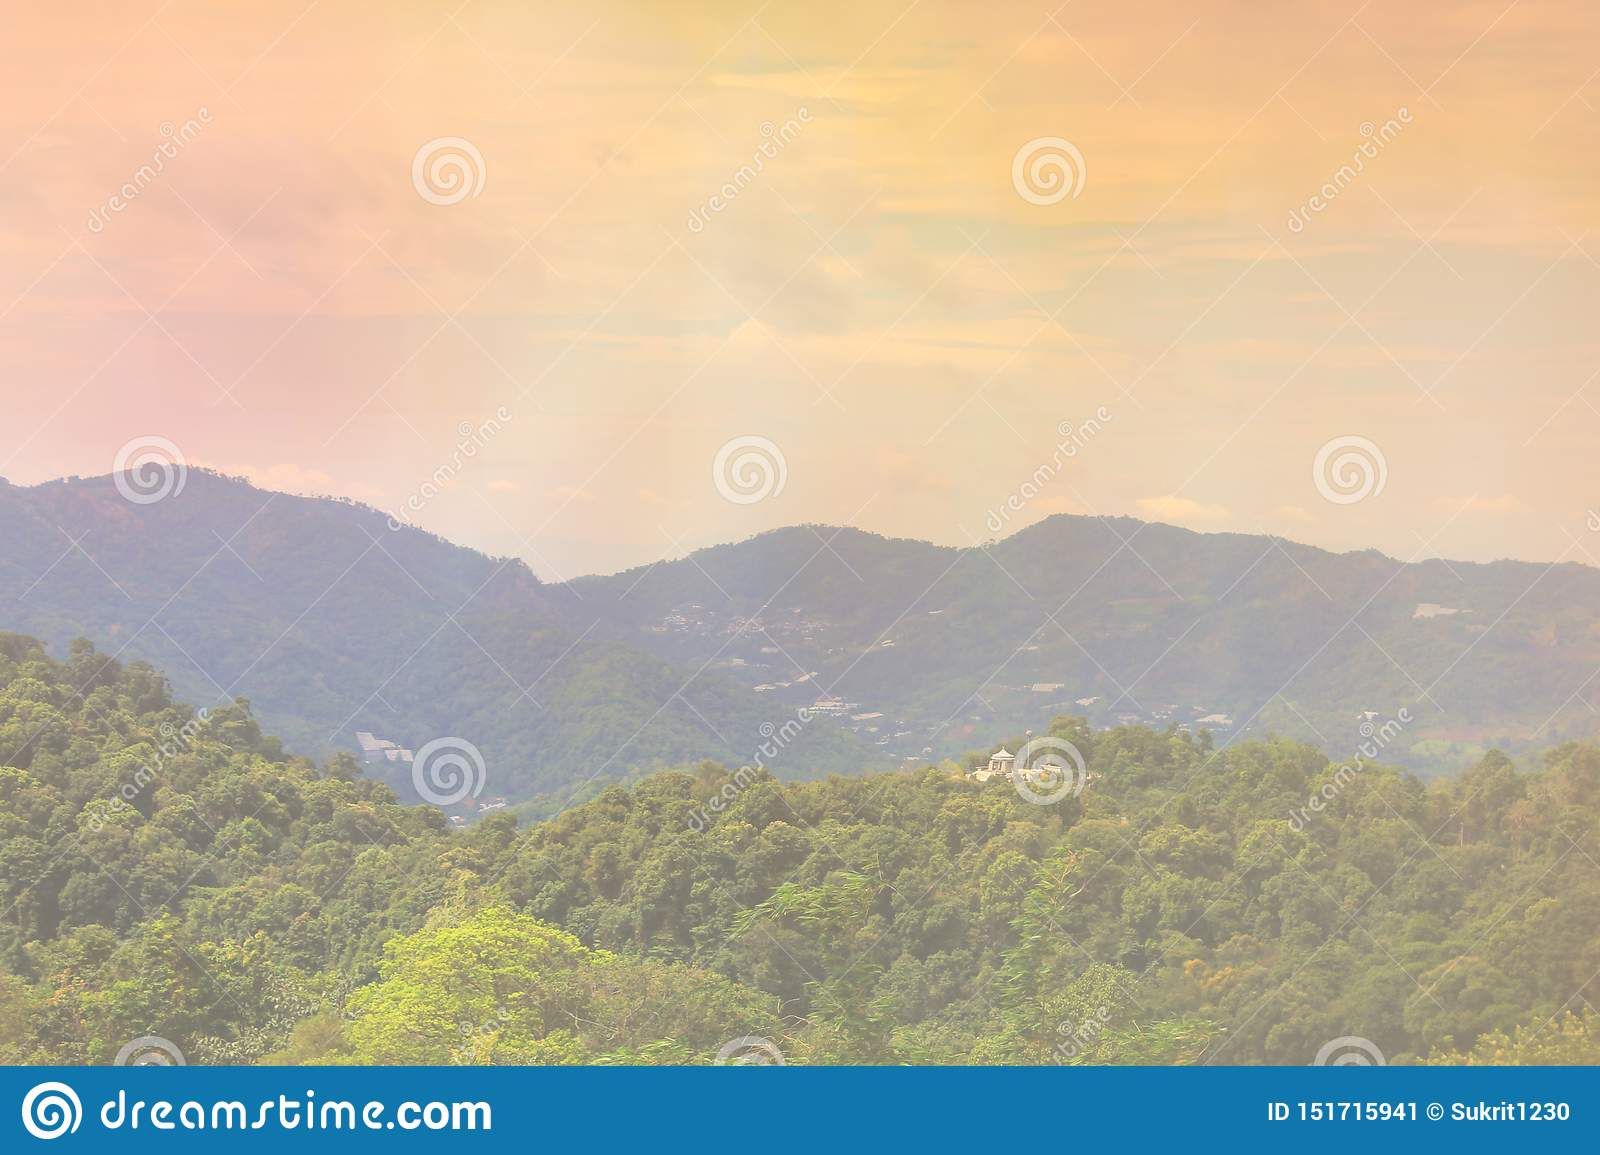 Mountains and light in the morning Beautiful natural landscape in the summer time - Image